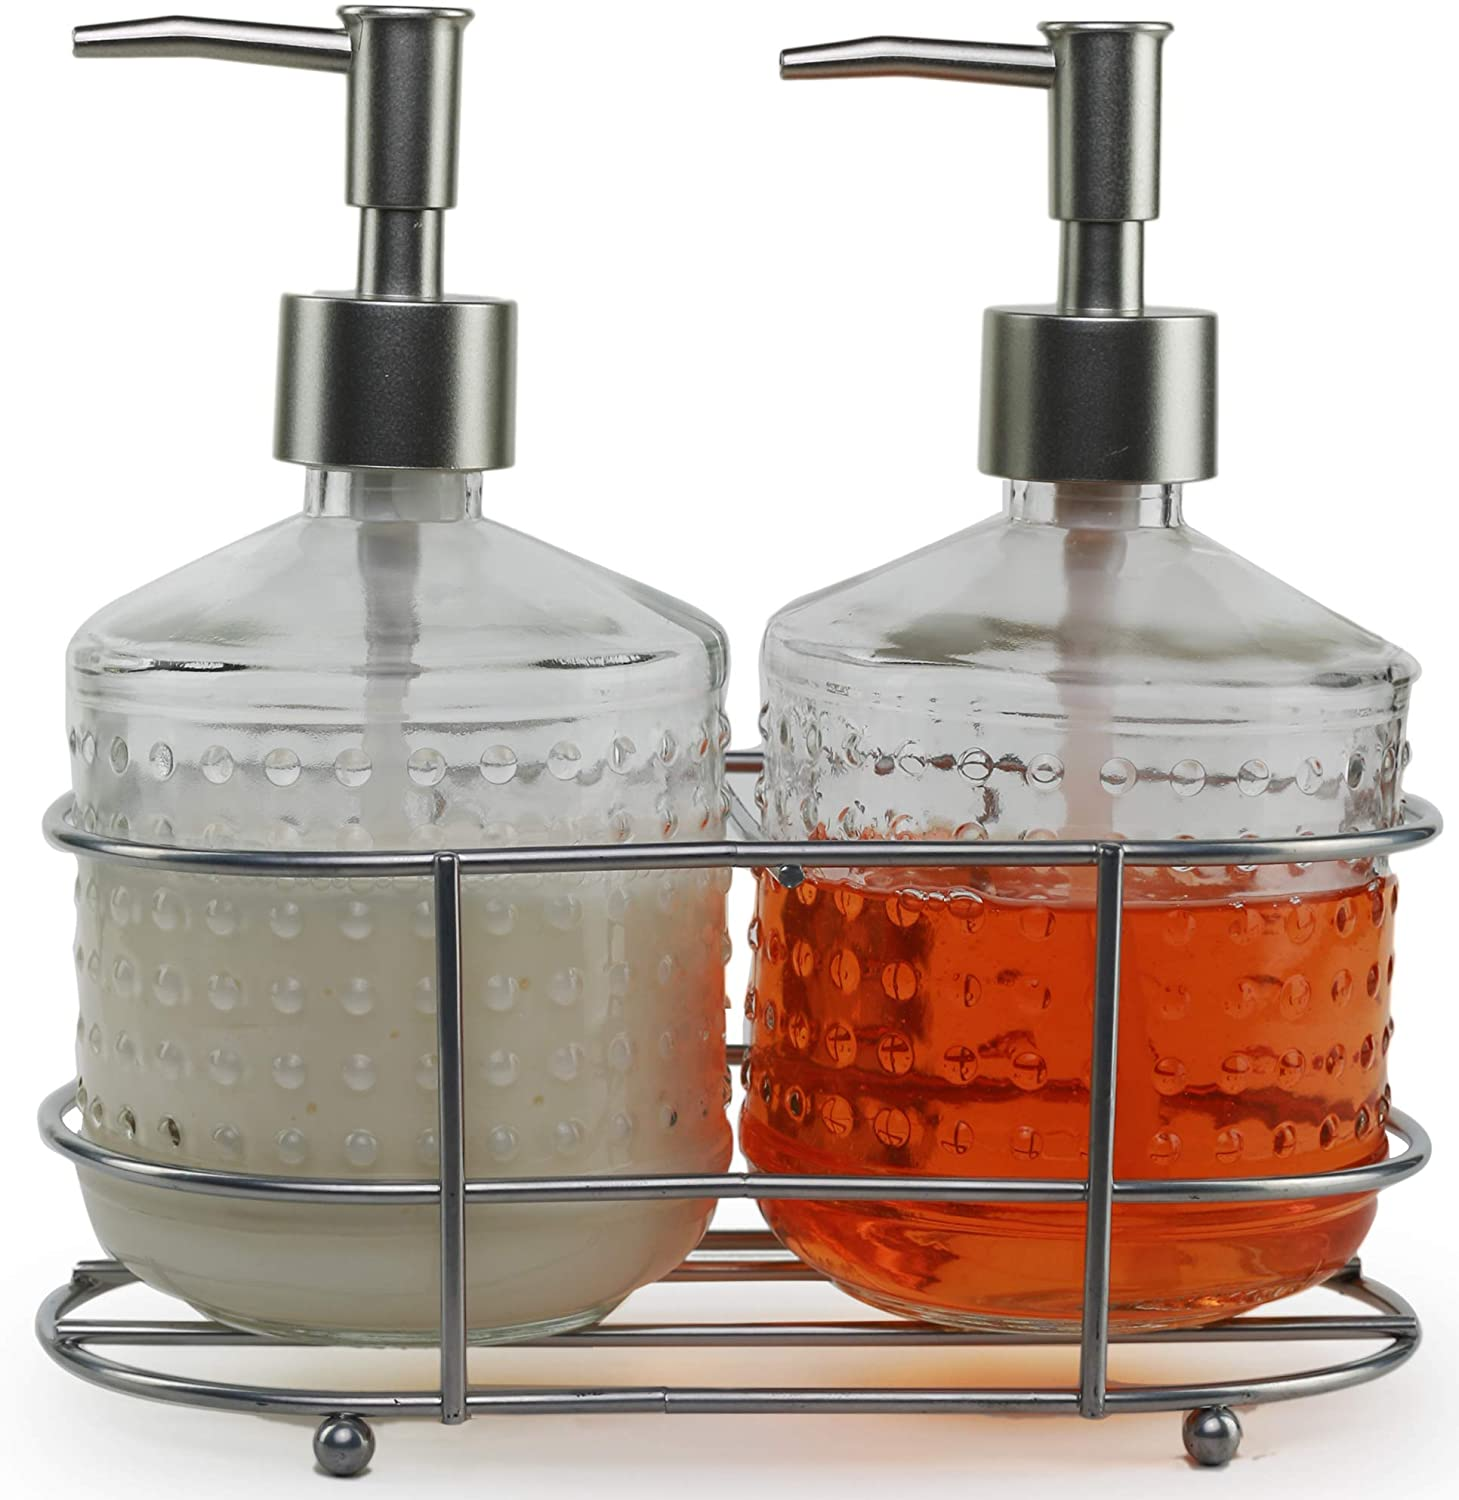 Circleware 32470 Hobnail Dispenser Bottle Pumps in Metal Caddy with Brushed Nickel Finish Set of 2 Bathroom Accessories Home Decor for Essential Oils, Lotions, Liquid Soaps 17.5 oz Vintage